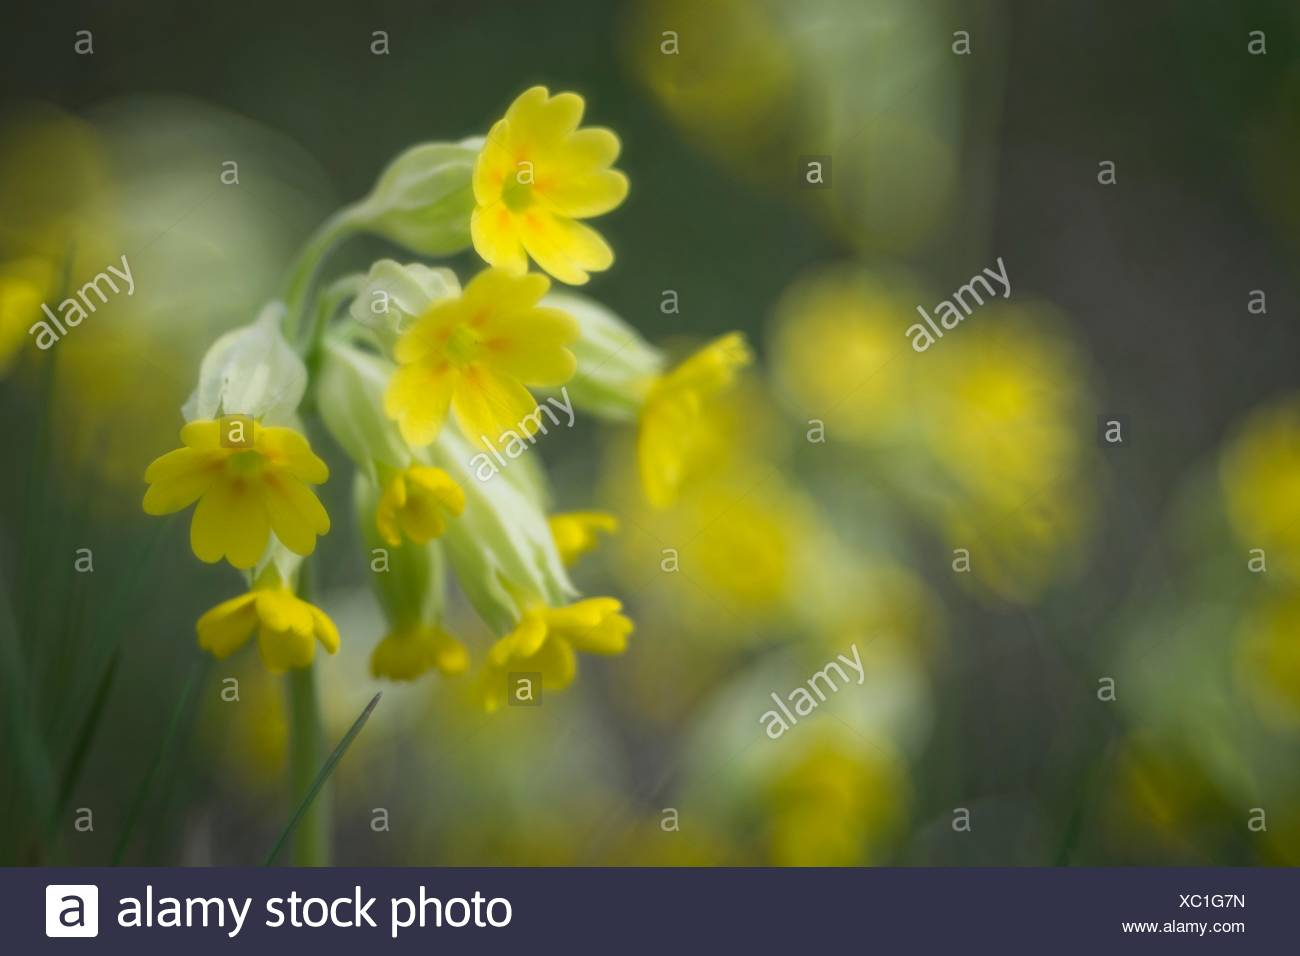 Cowslip (Primula veris), Flower of 2016, Baden-Württemberg, Germany Stock Photo